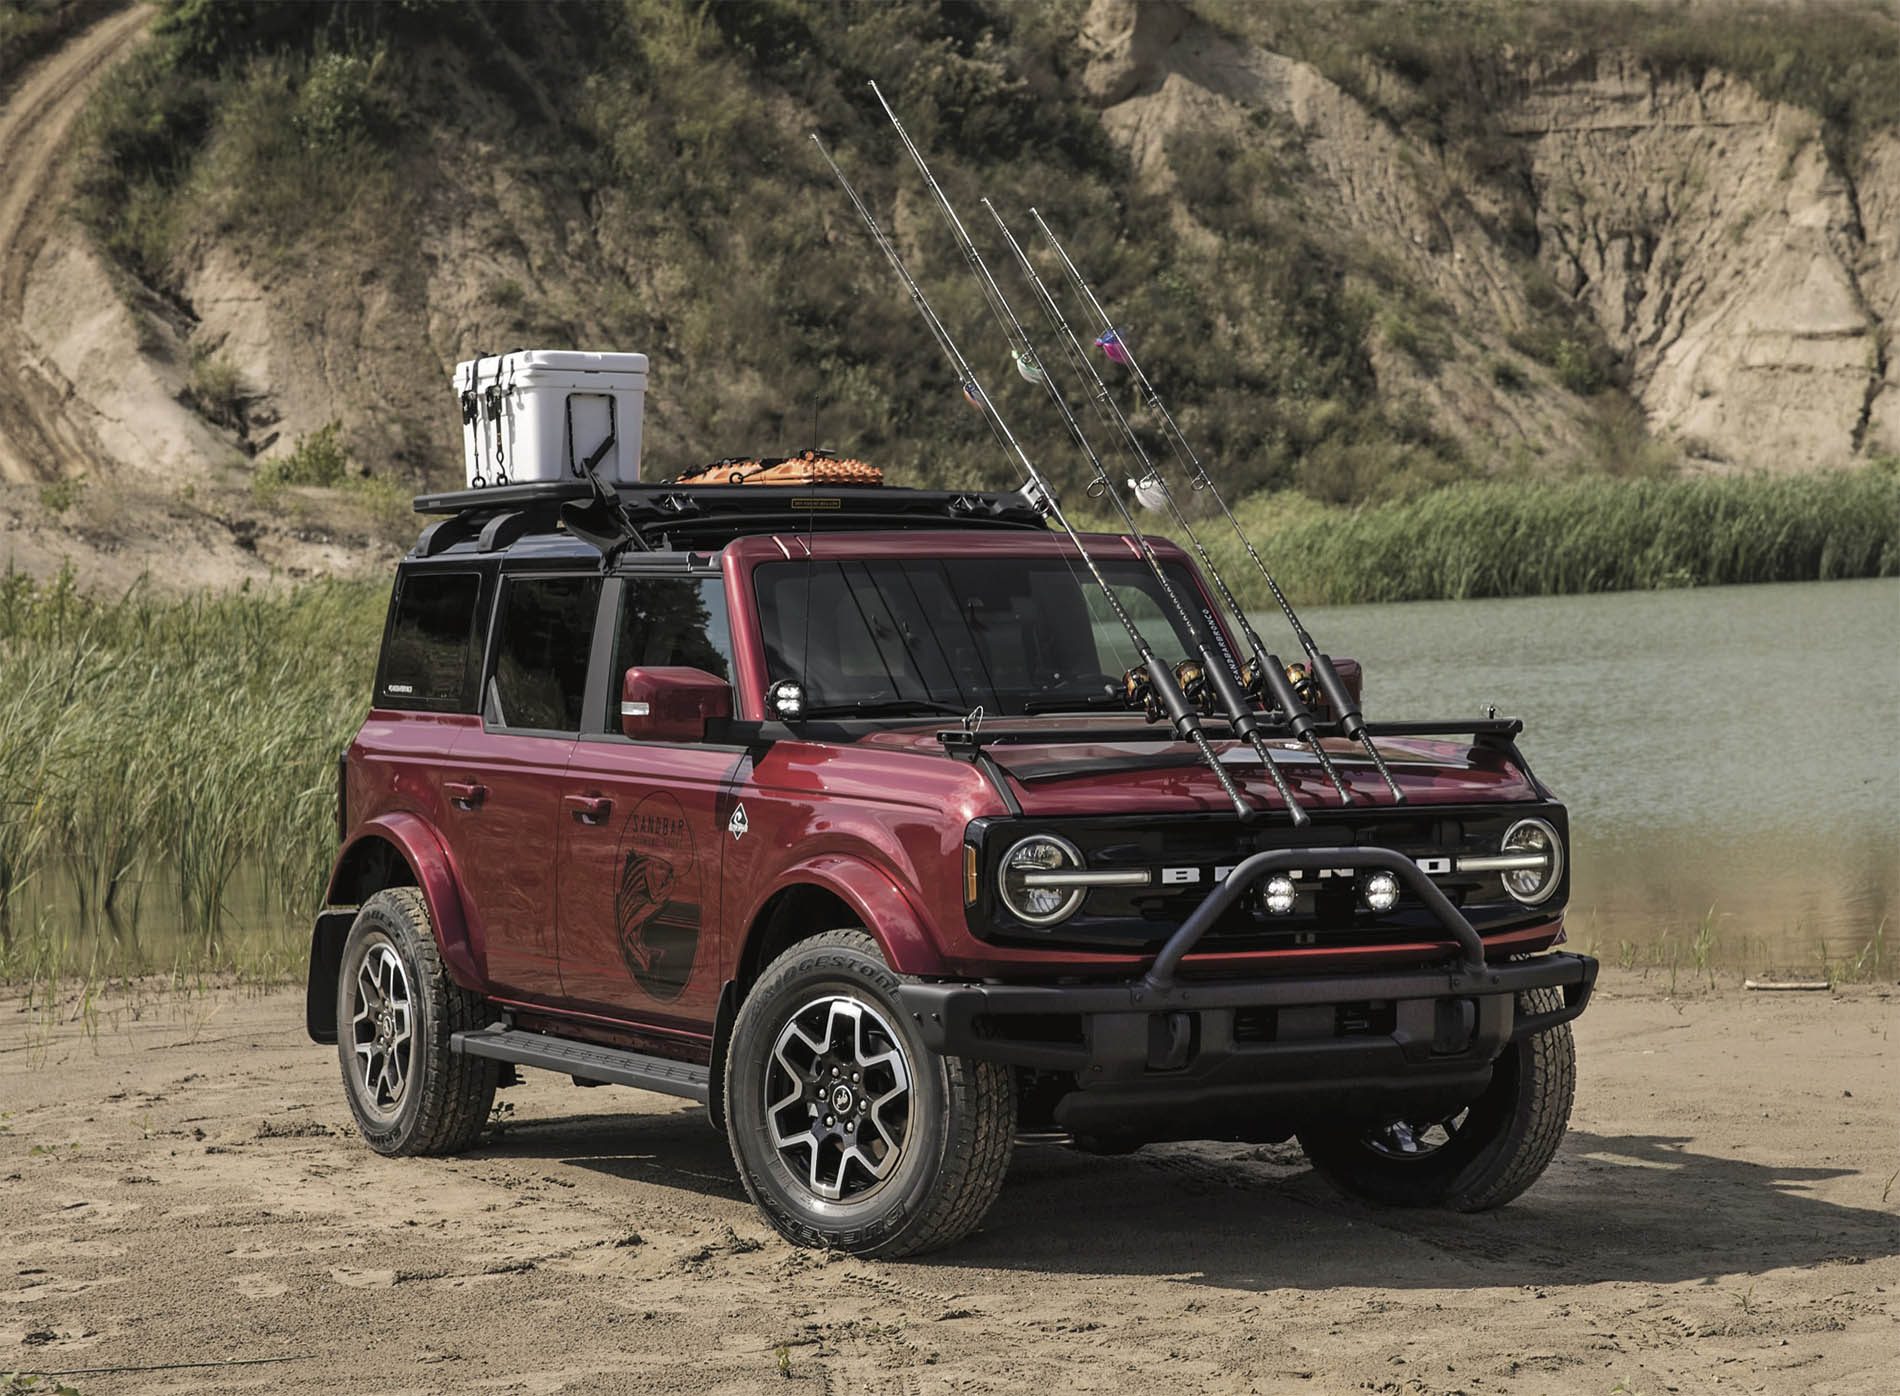 2021 Bronco Four Door Outer Banks Fishing Guide Concept.jpg